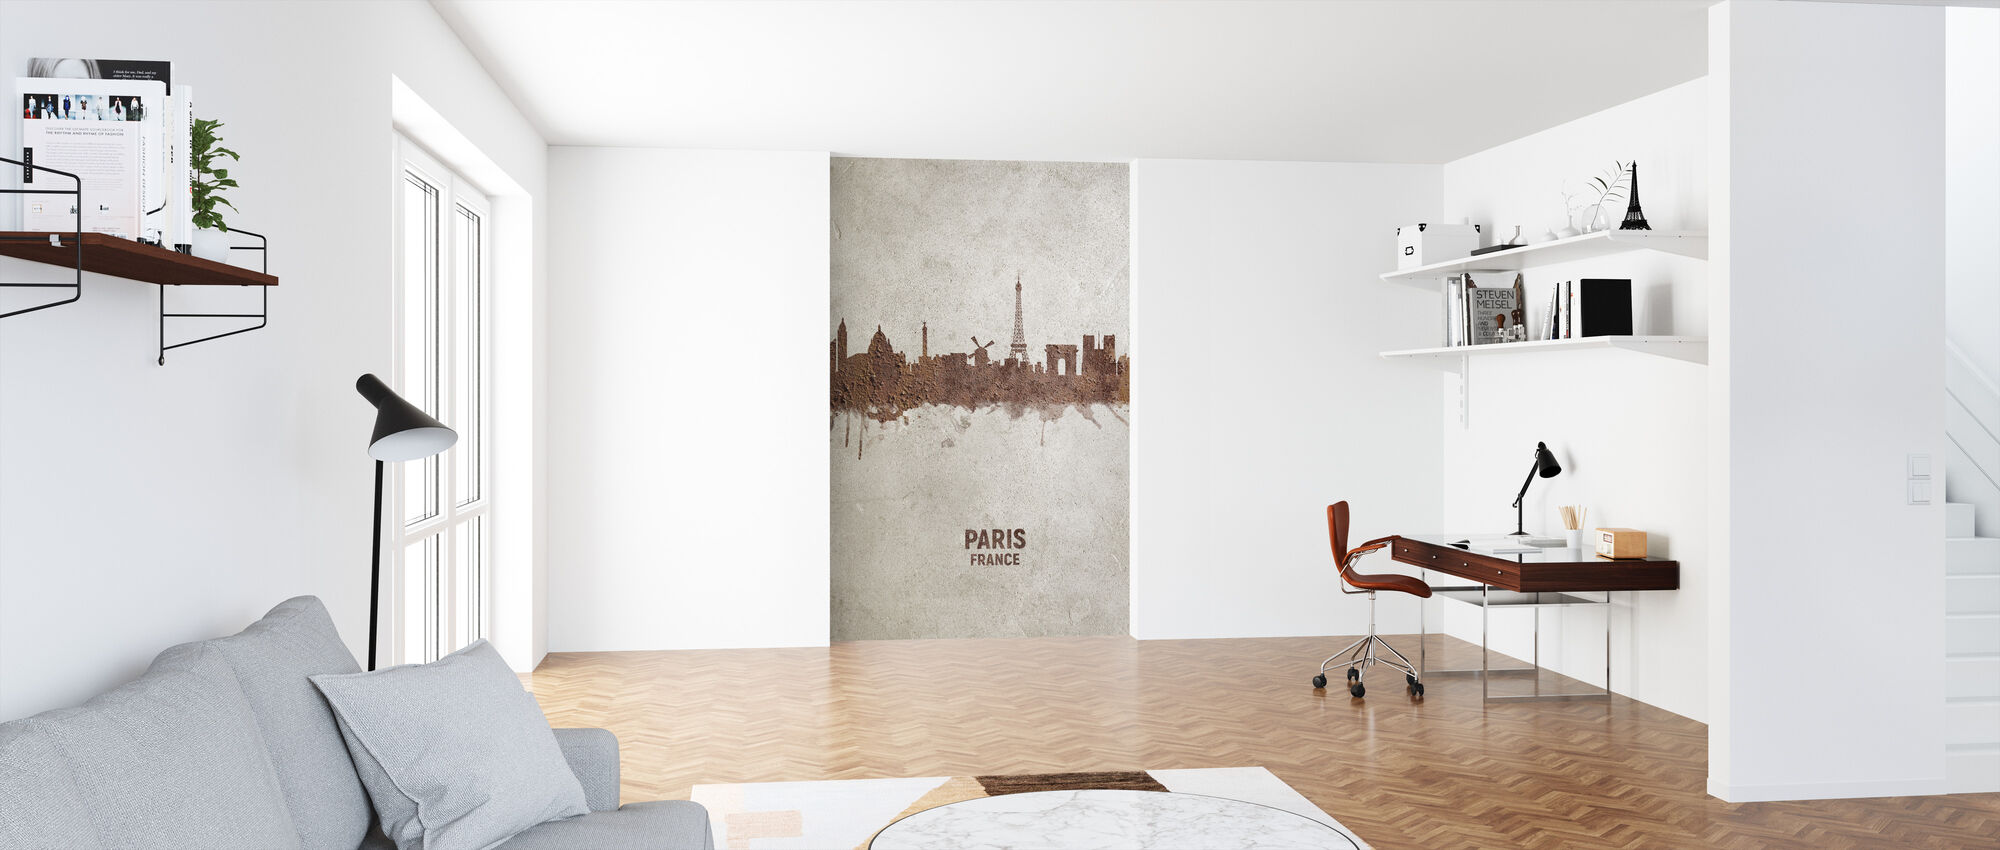 Paris France Rust Skyline - Wallpaper - Office